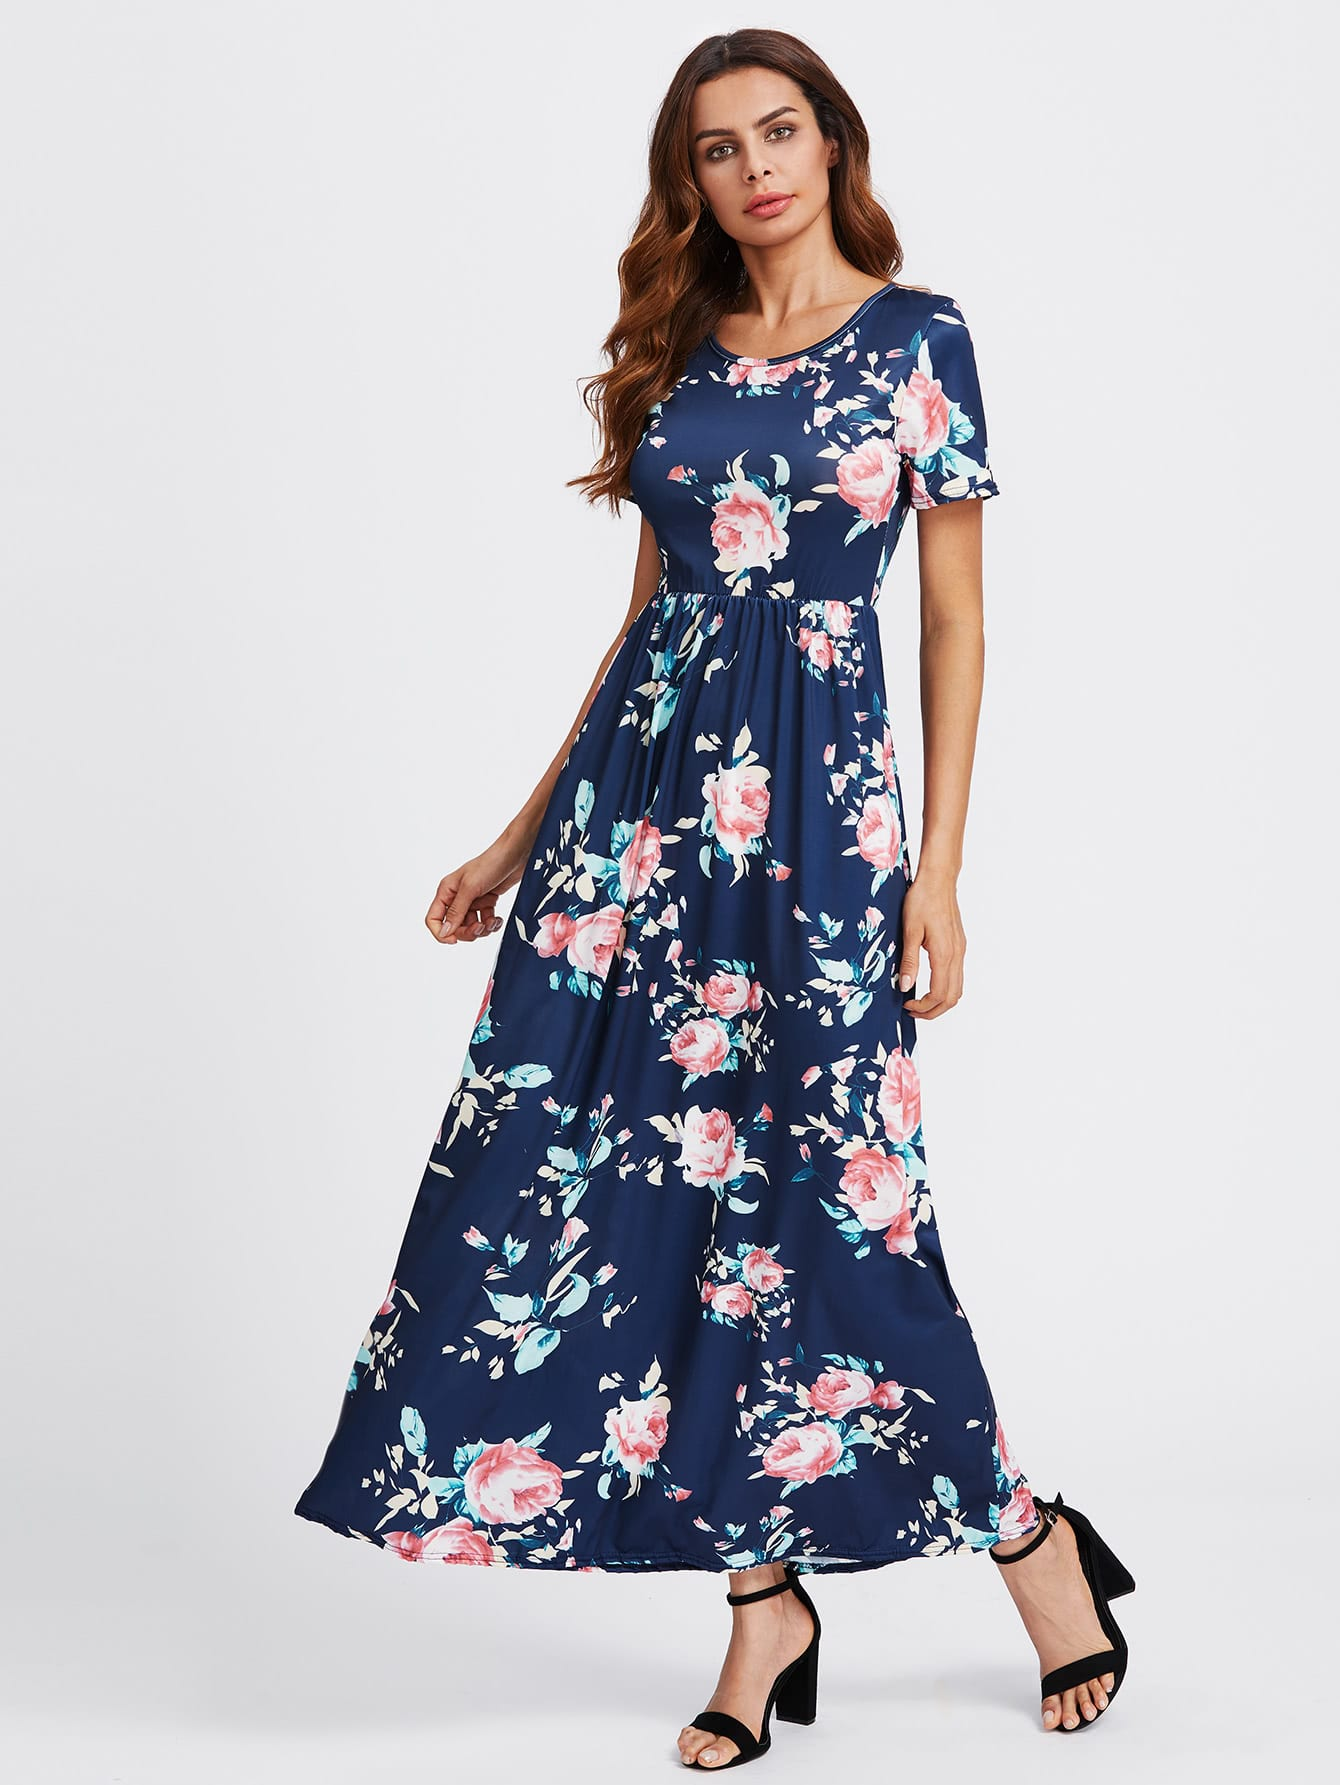 fec408bbf8 Flower Print Maxi Dress Flower Print Maxi Dress Dresses SheIn Product  Catalog Multicolor Vacation Polyester Scoop Neck Short Sleeve ...